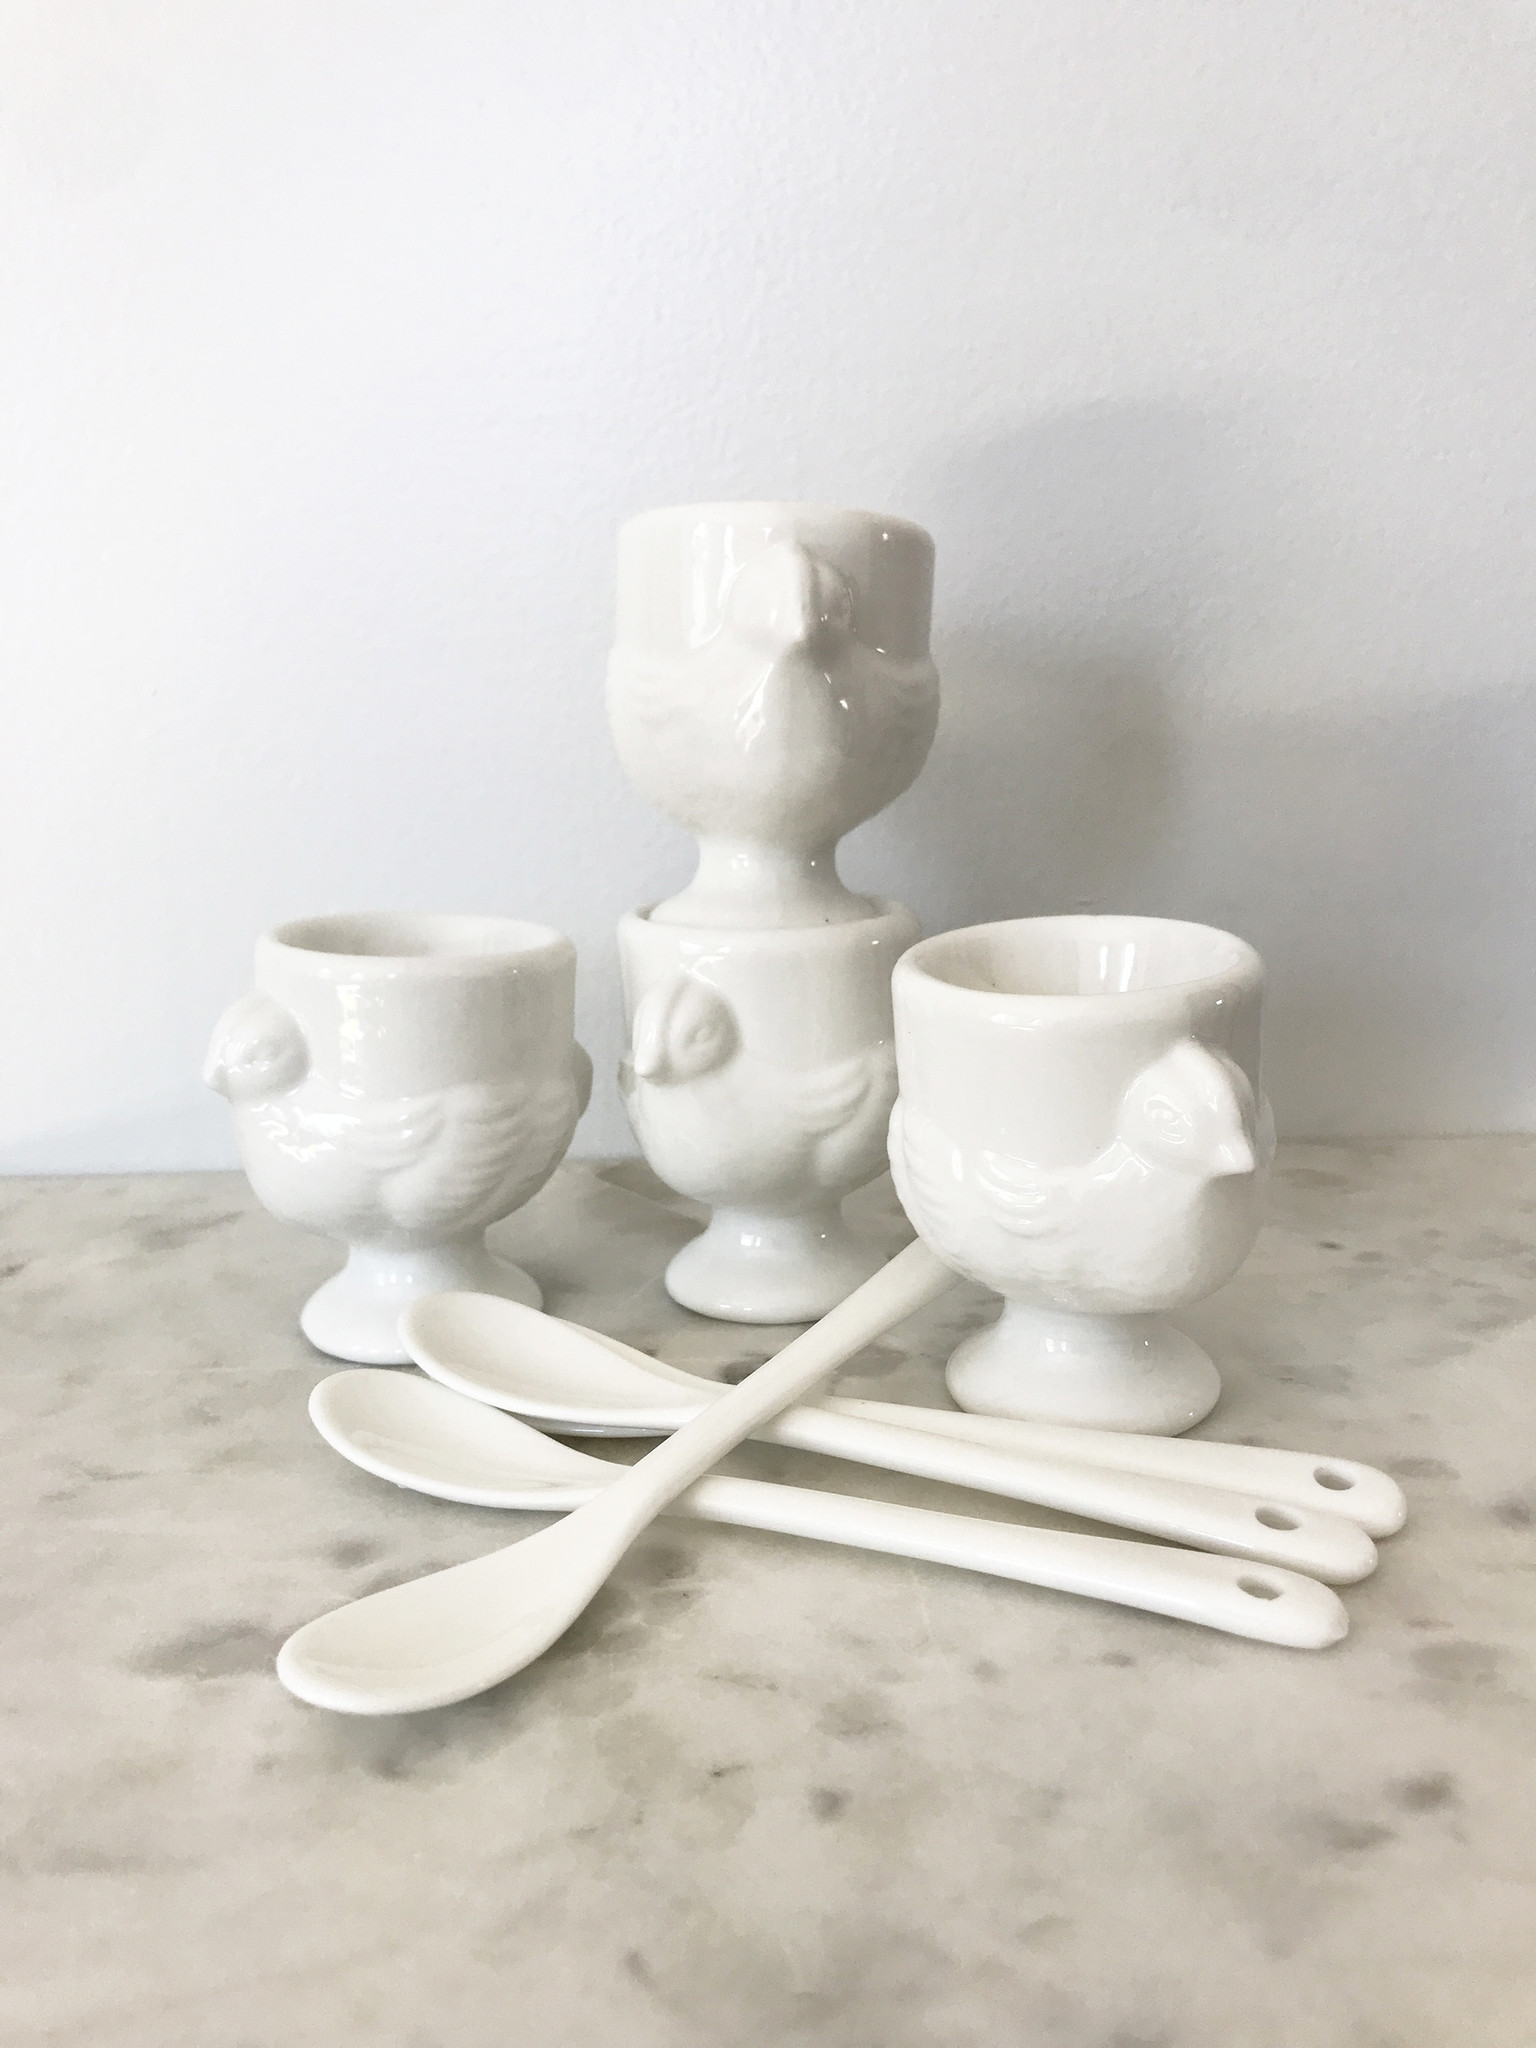 RSVP Porcelain Egg Cups and Spoons Set of 4-1